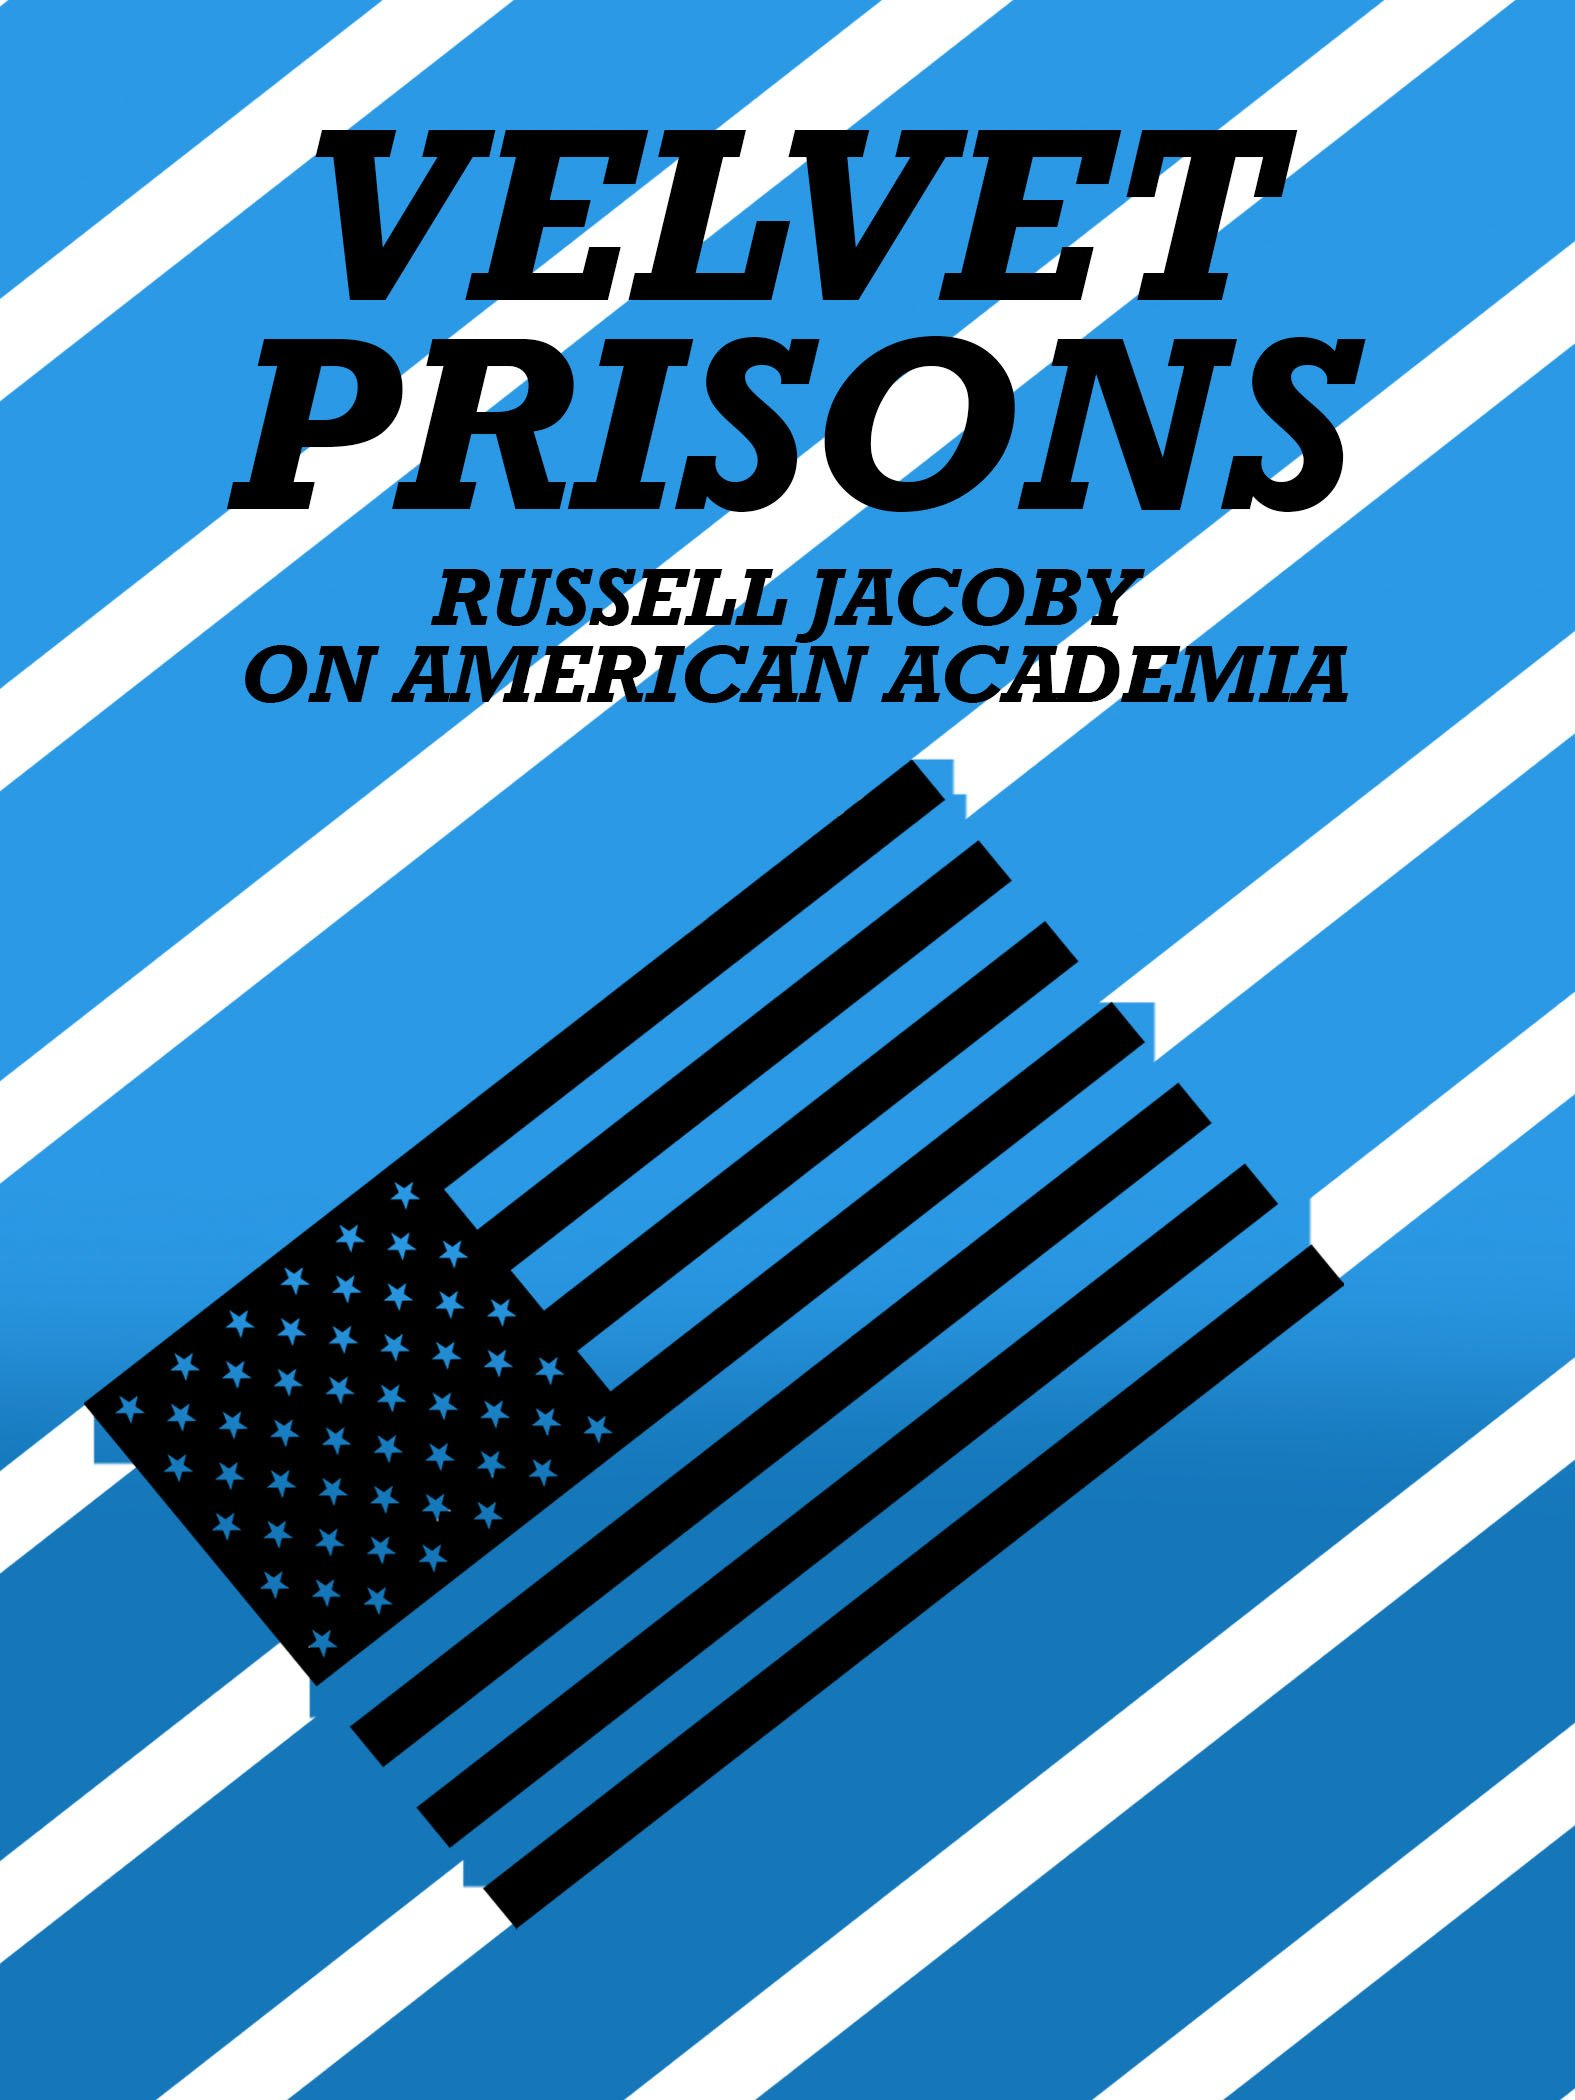 Velvet Prisons: Russell Jacoby on American Academia on Amazon Prime Instant Video UK